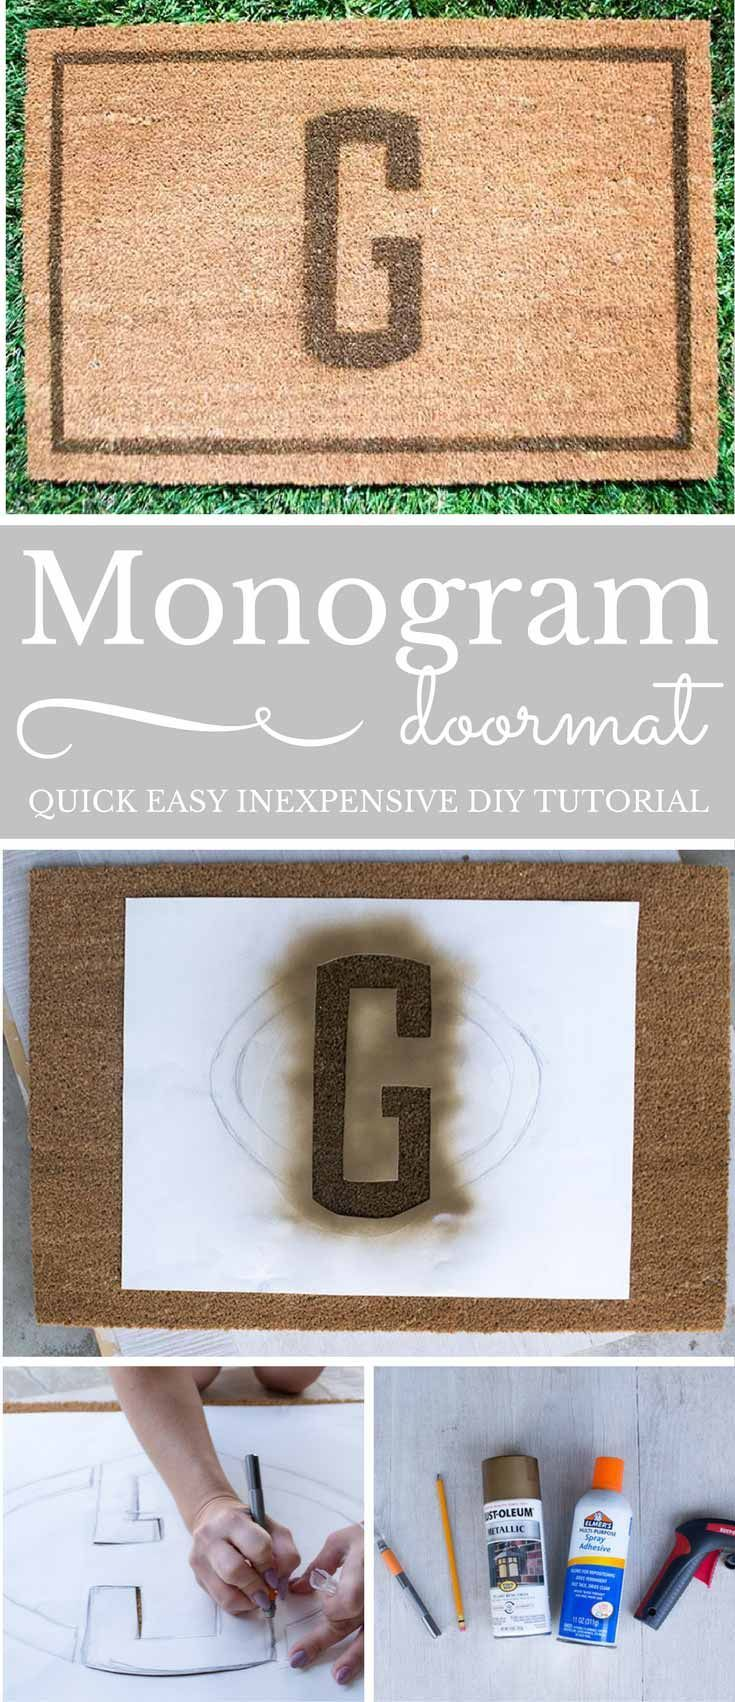 My Quick Easy Monogram Doormat, looks as great as those expensive brands, but costs a fraction of the price! This DIY will be my new hostess gift!